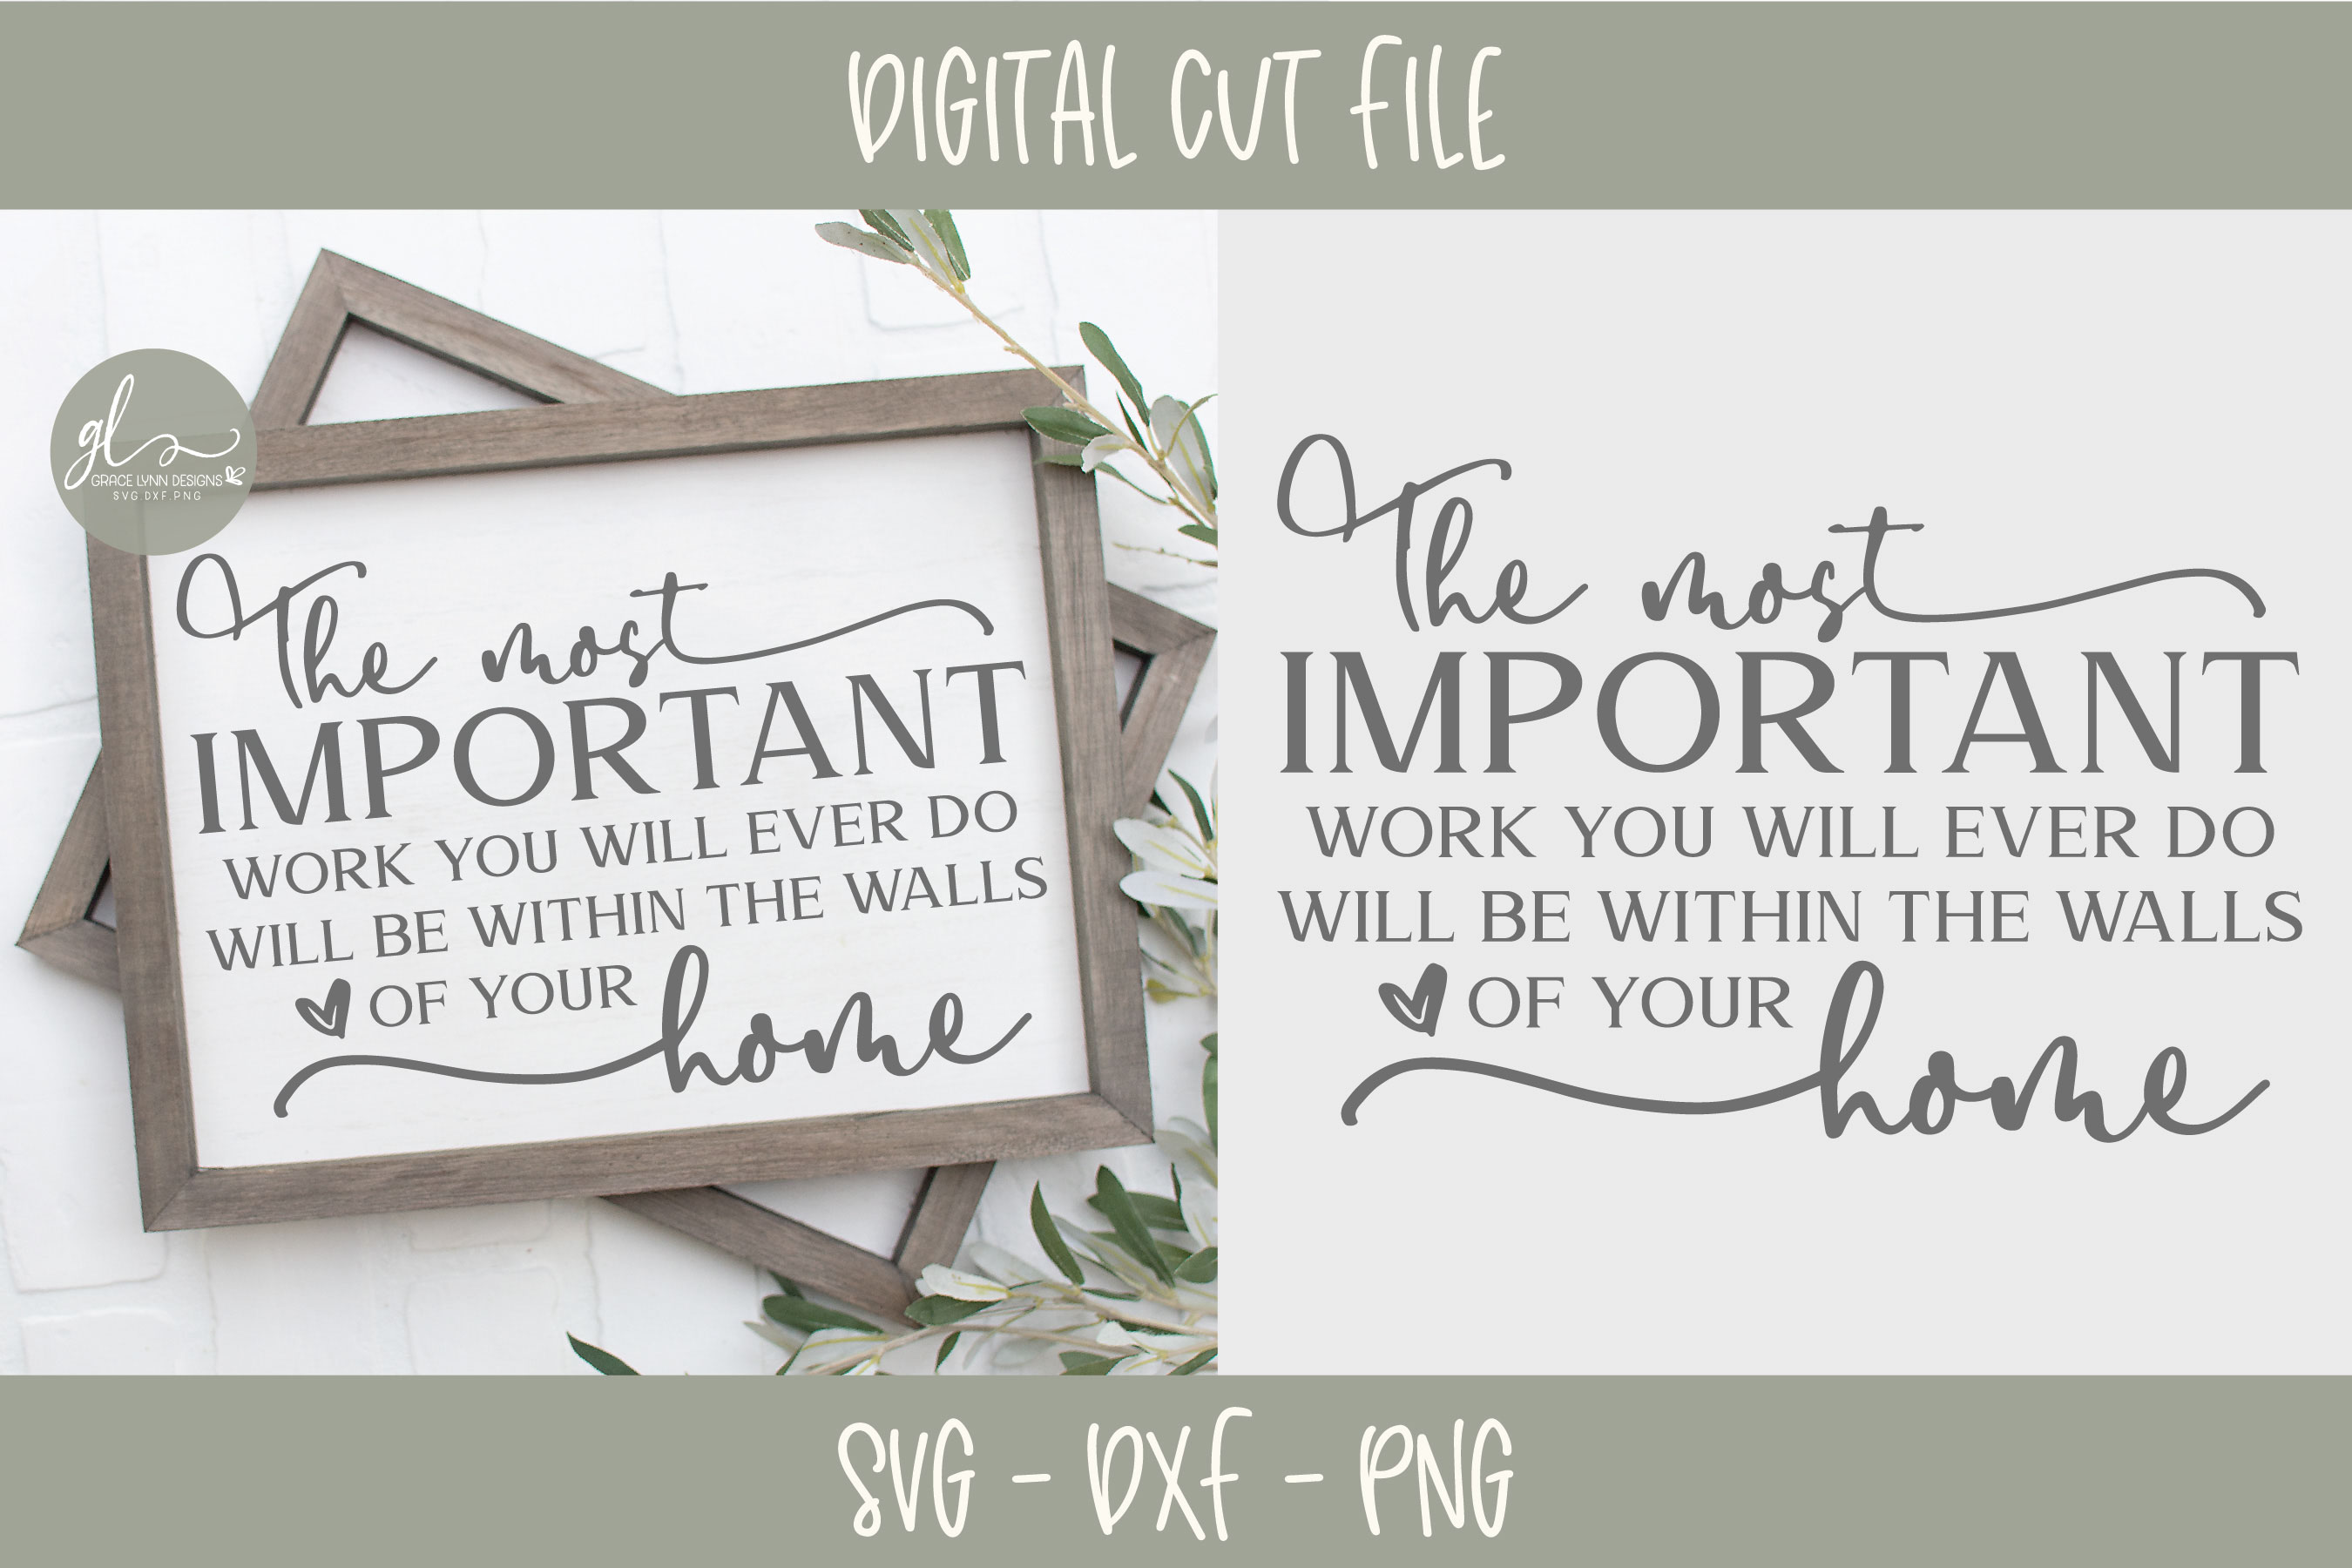 The Most Important Work You Will Ever Do - SVG Cut File example image 1